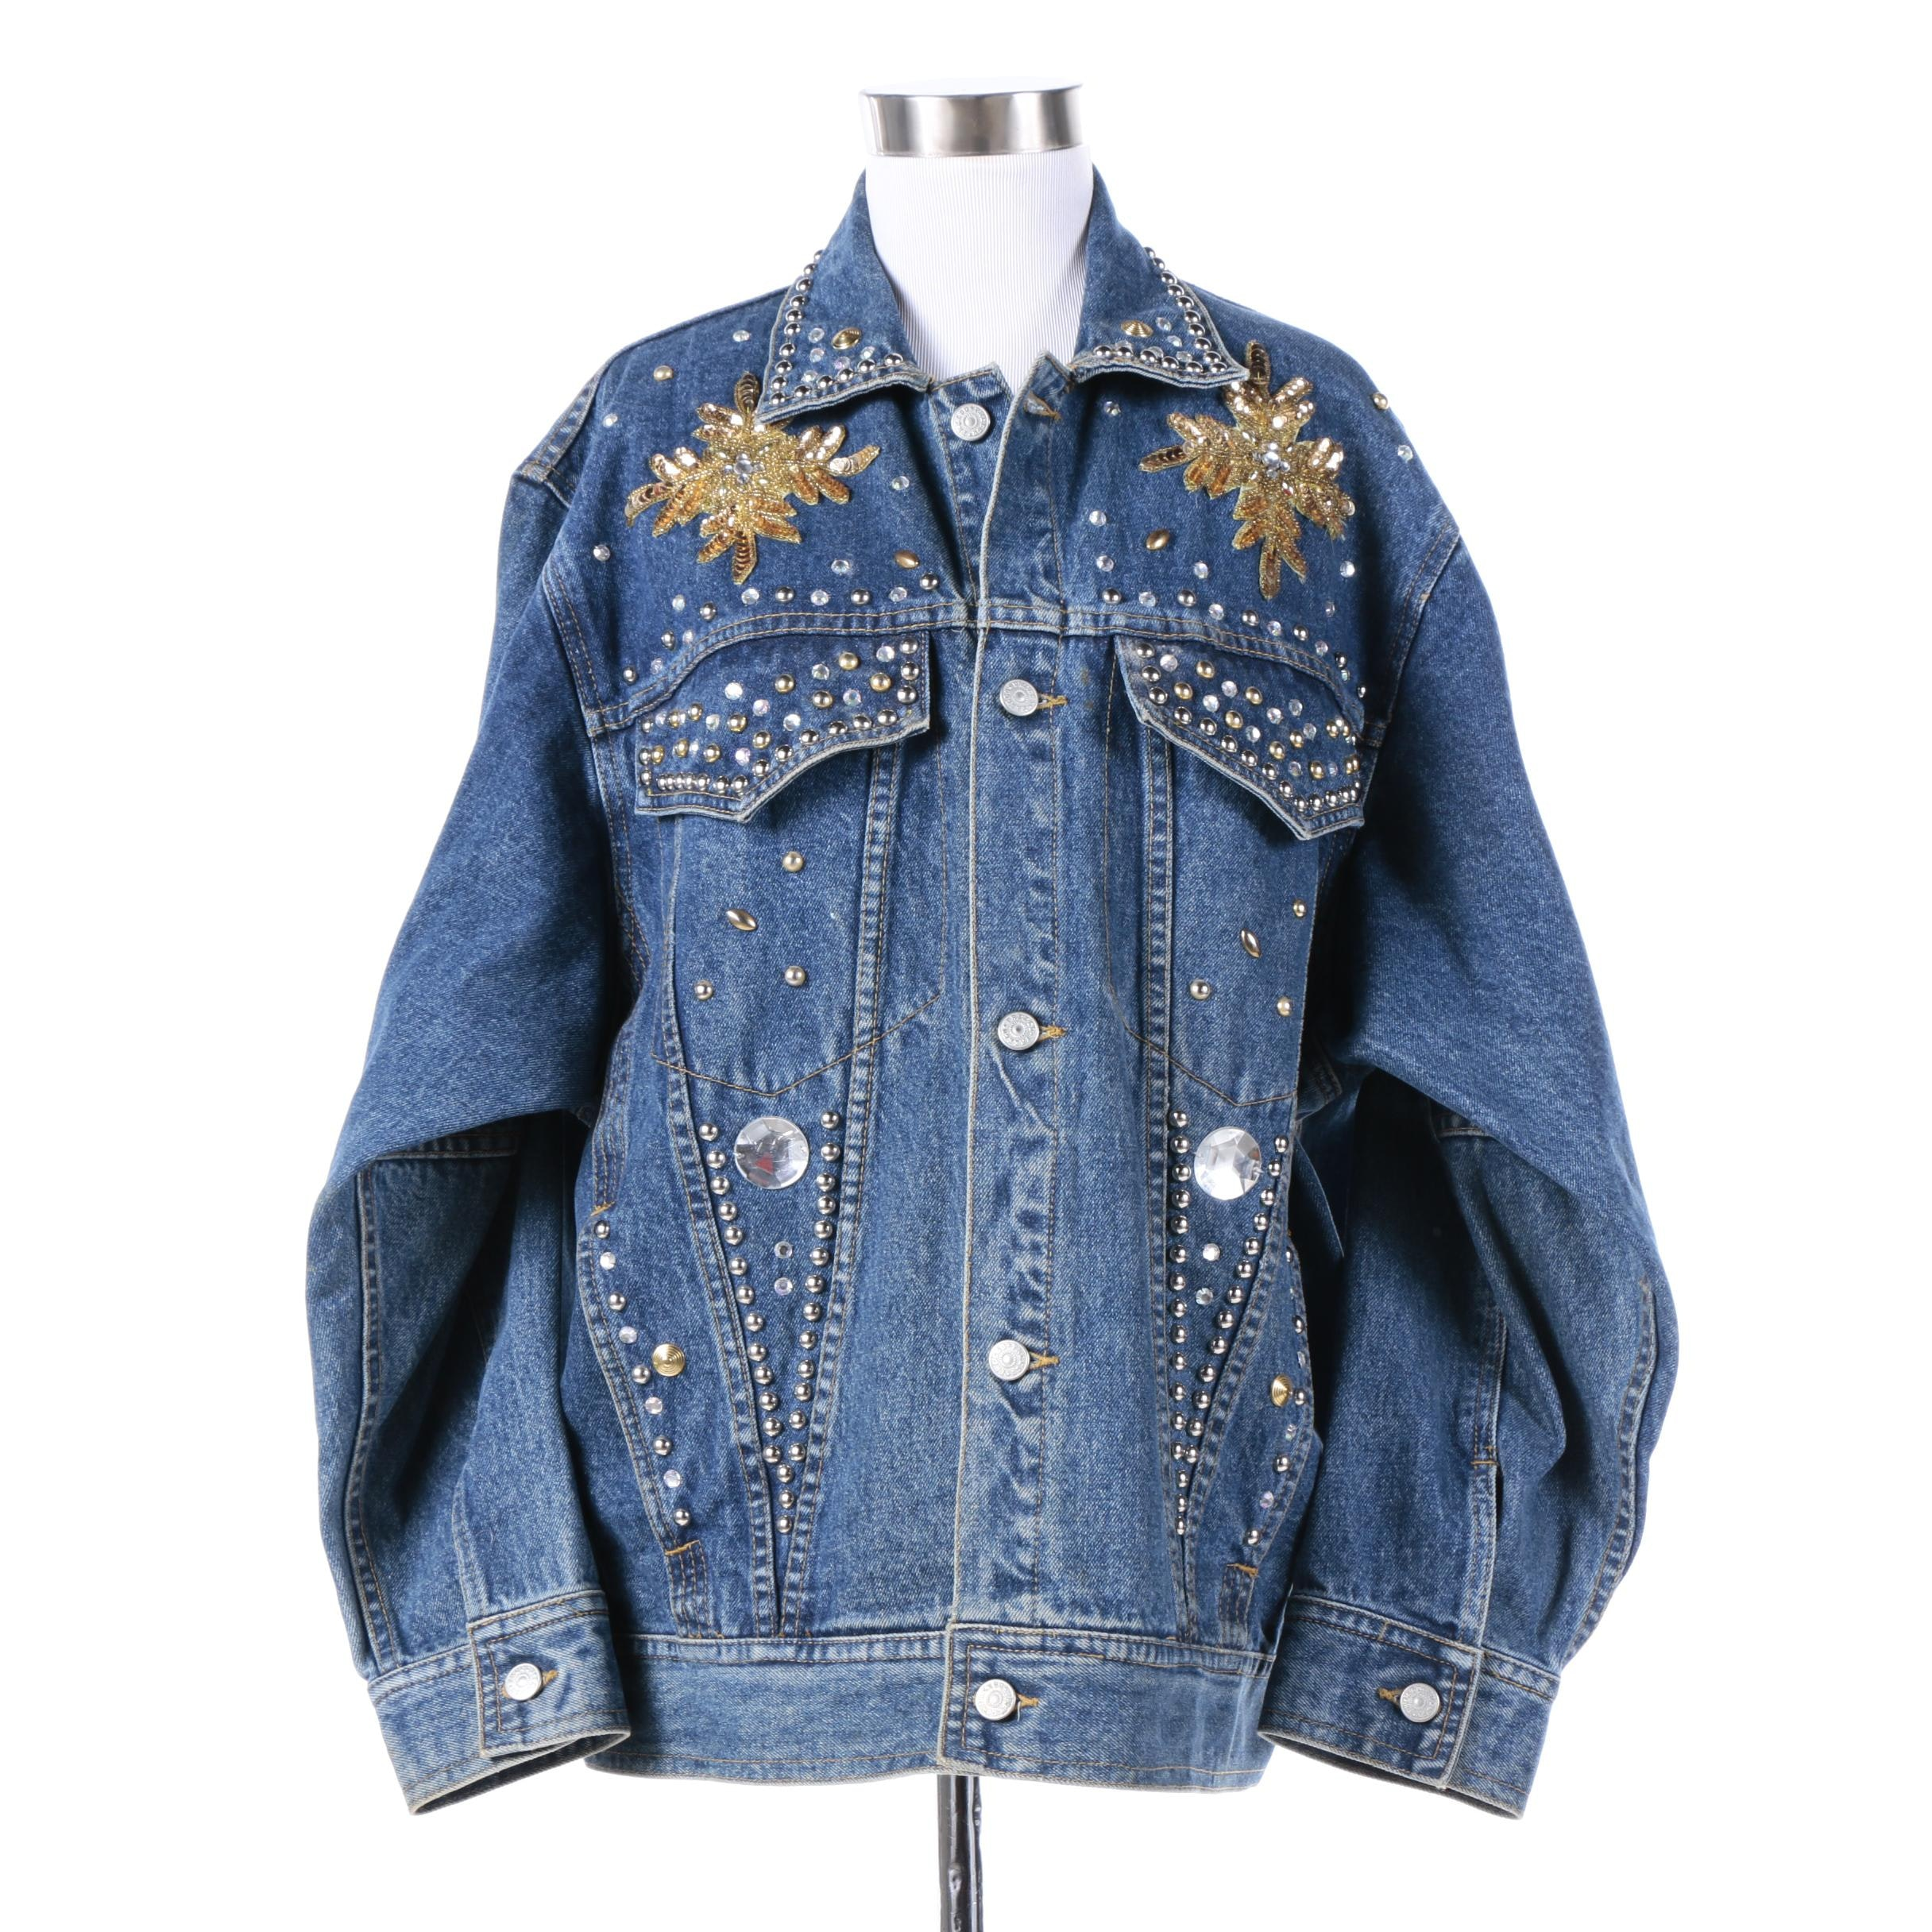 Freego Studded Denim Jean Jacket with Sequin Appliques